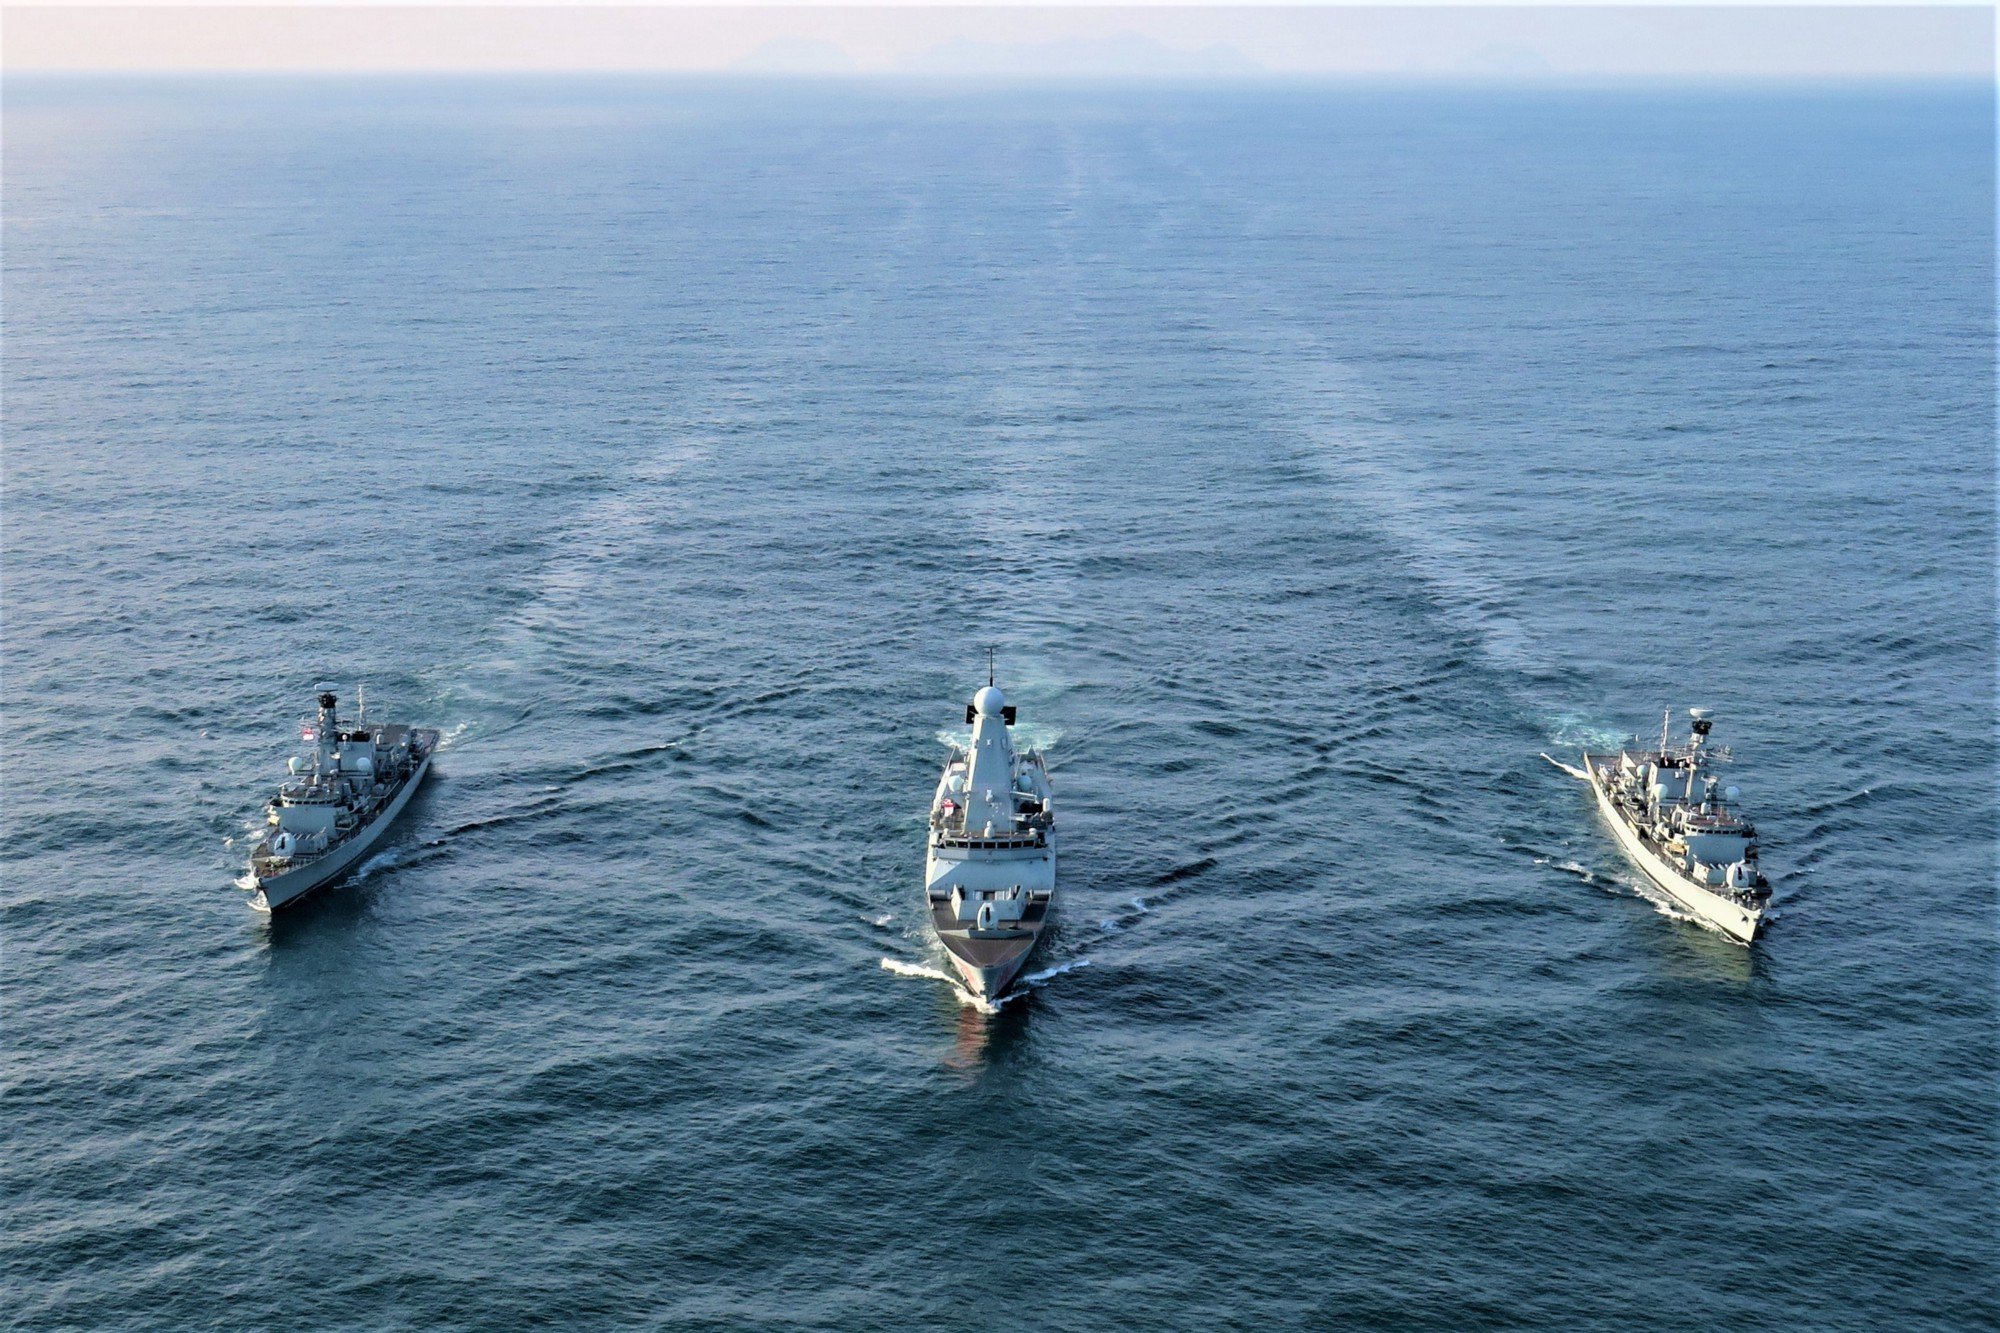 HMS Lancaster (left), HMS Dragon (middle) and HMS Argyll (right), seen here off Scotland's Outer Hebrides and Norway's Arctic coast as part of Exercise Formidable Shield 2021.